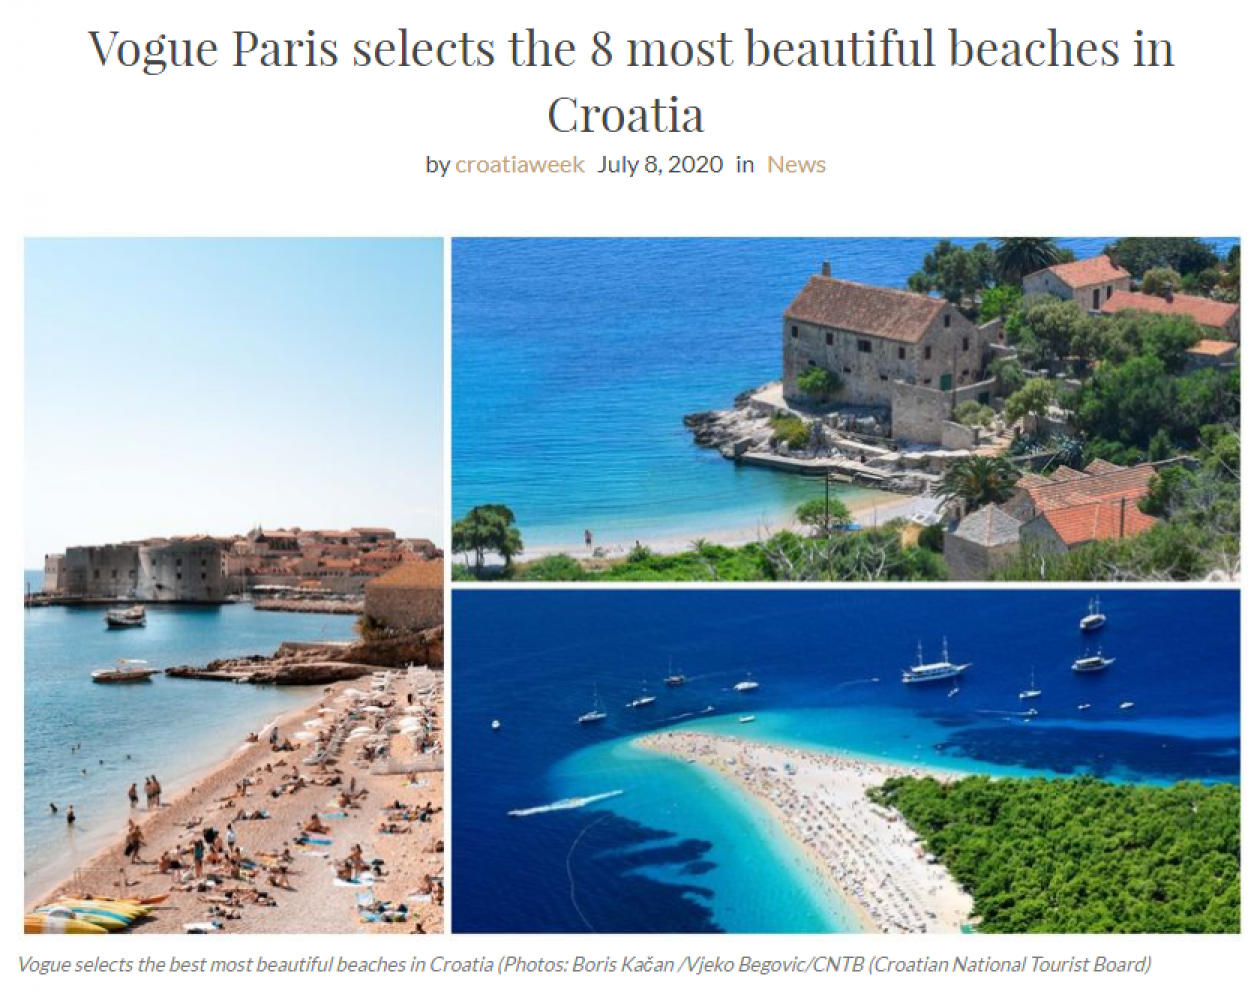 Vogue Paris selects the 8 most beautiful beaches in Croatia